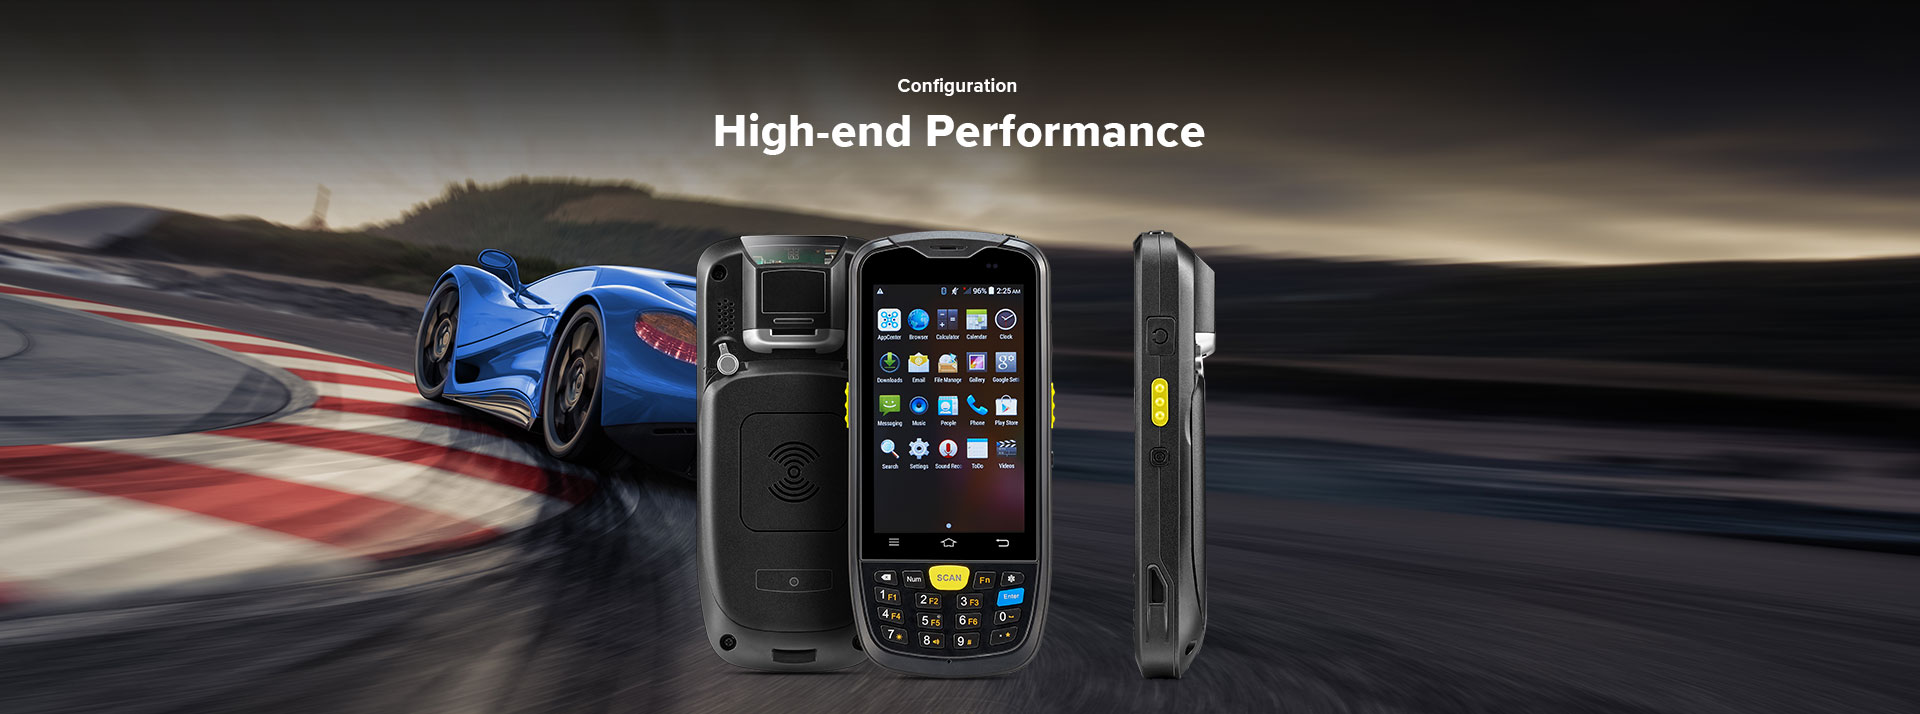 C6000 Rugged Handheld Computer Android - high performance